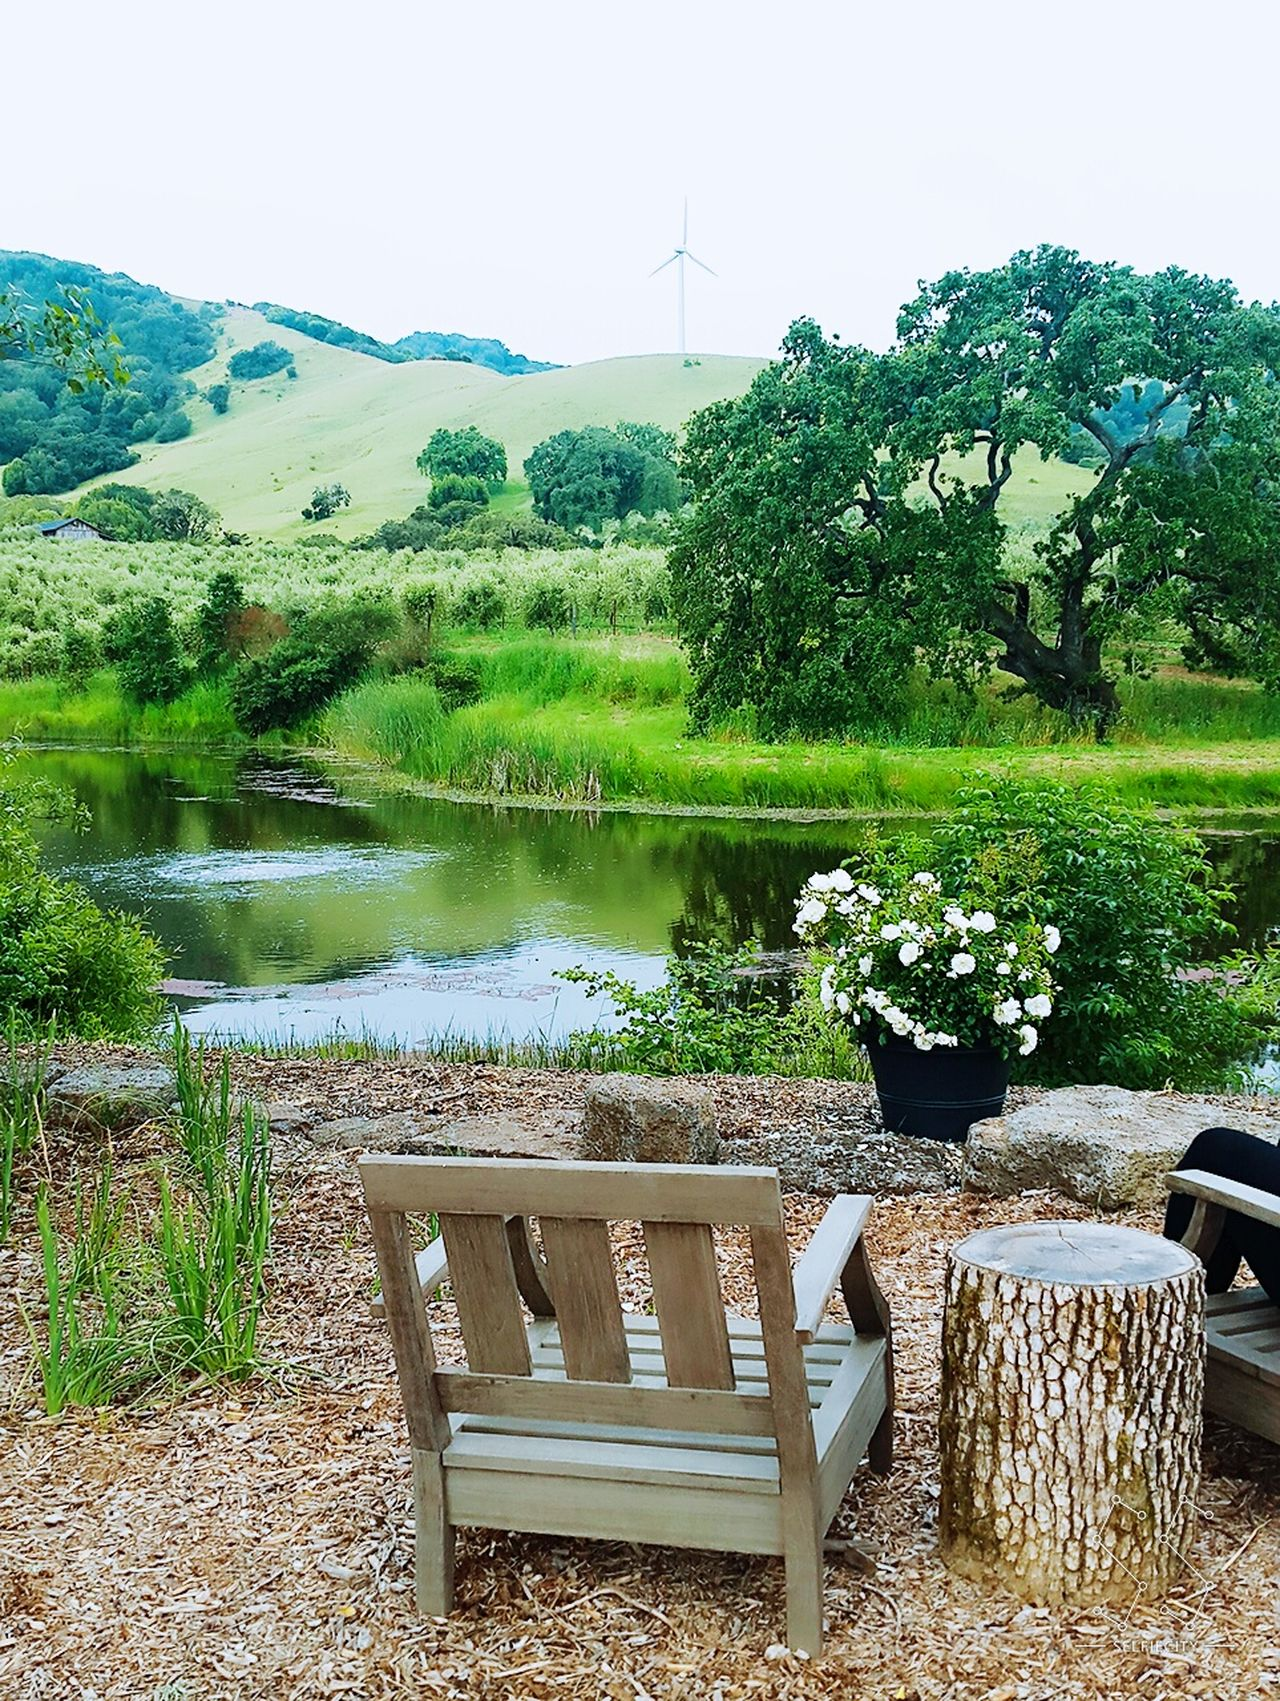 Original Experiences America Olive Tree Valley California Vineyard Serene Tranquility View Senic Vacation Trip Tourist Peaceful Windmill Greenery